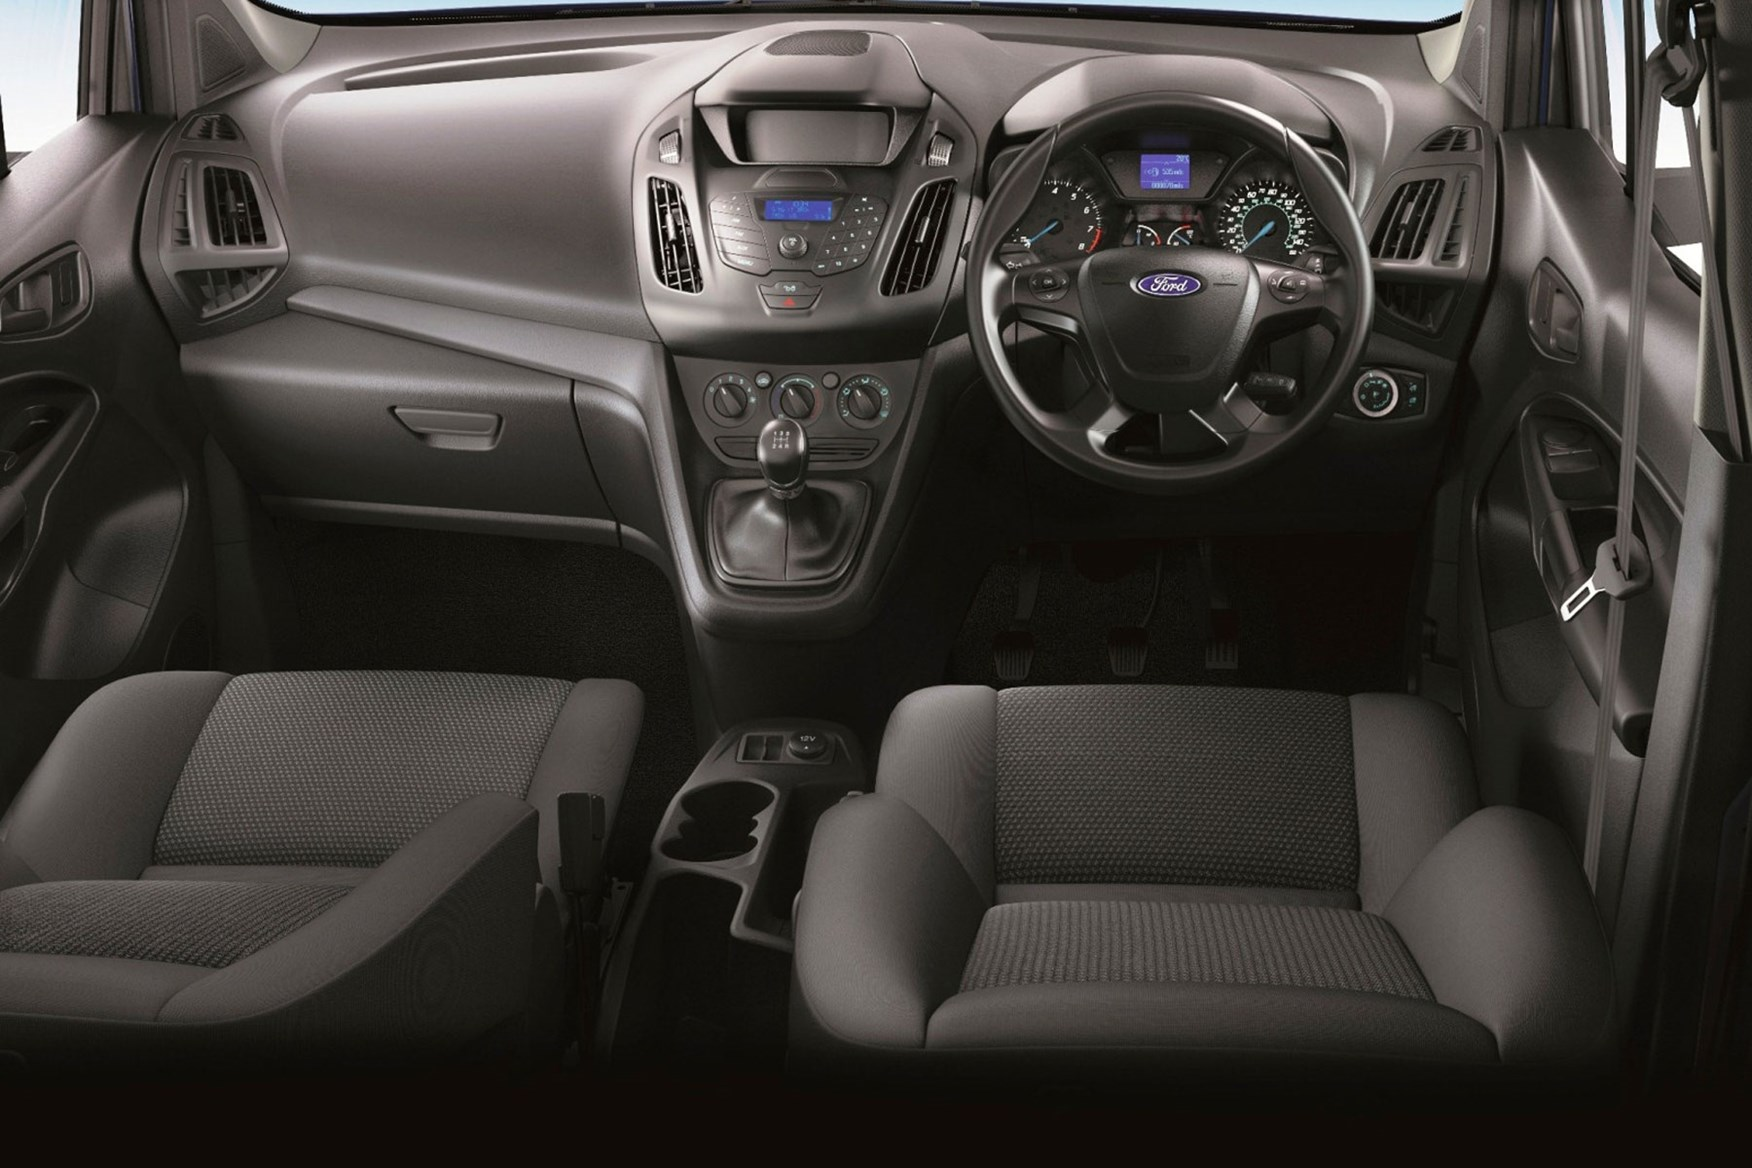 Ford Transit Connect review - 2013 cab interior showing steering wheel and dashboard, basic radio, lots of buttons